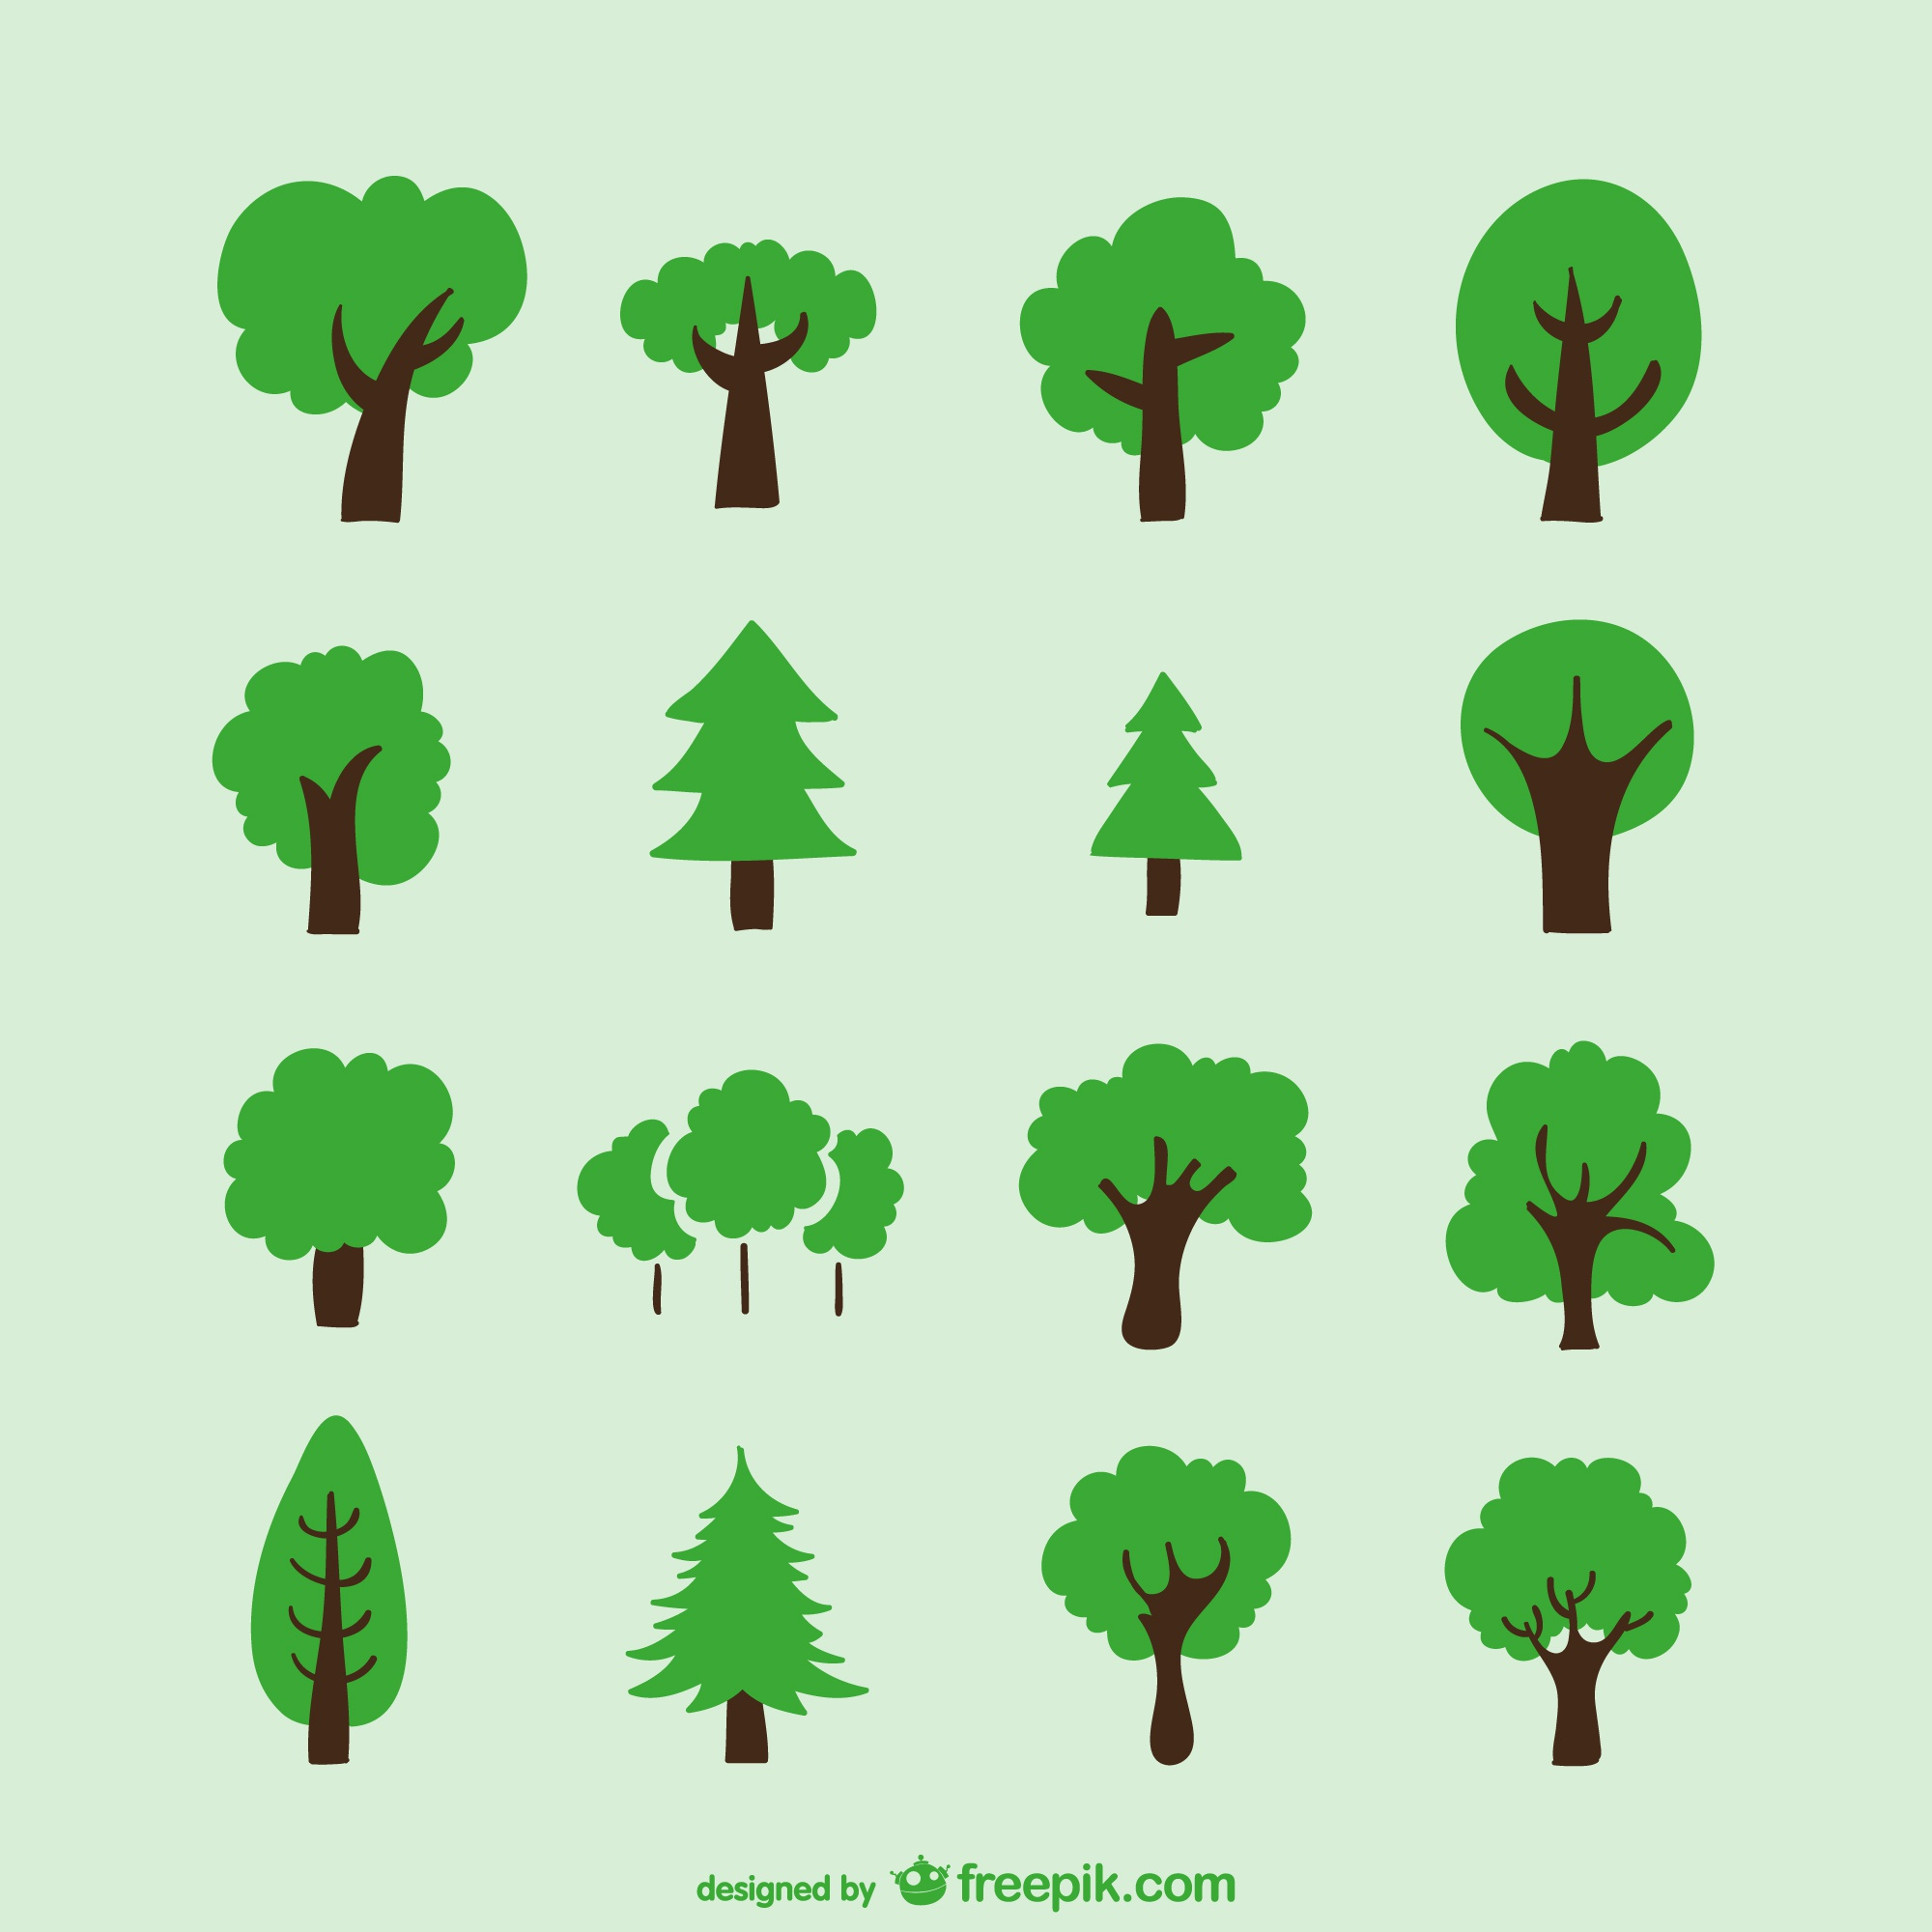 Hand drawn trees